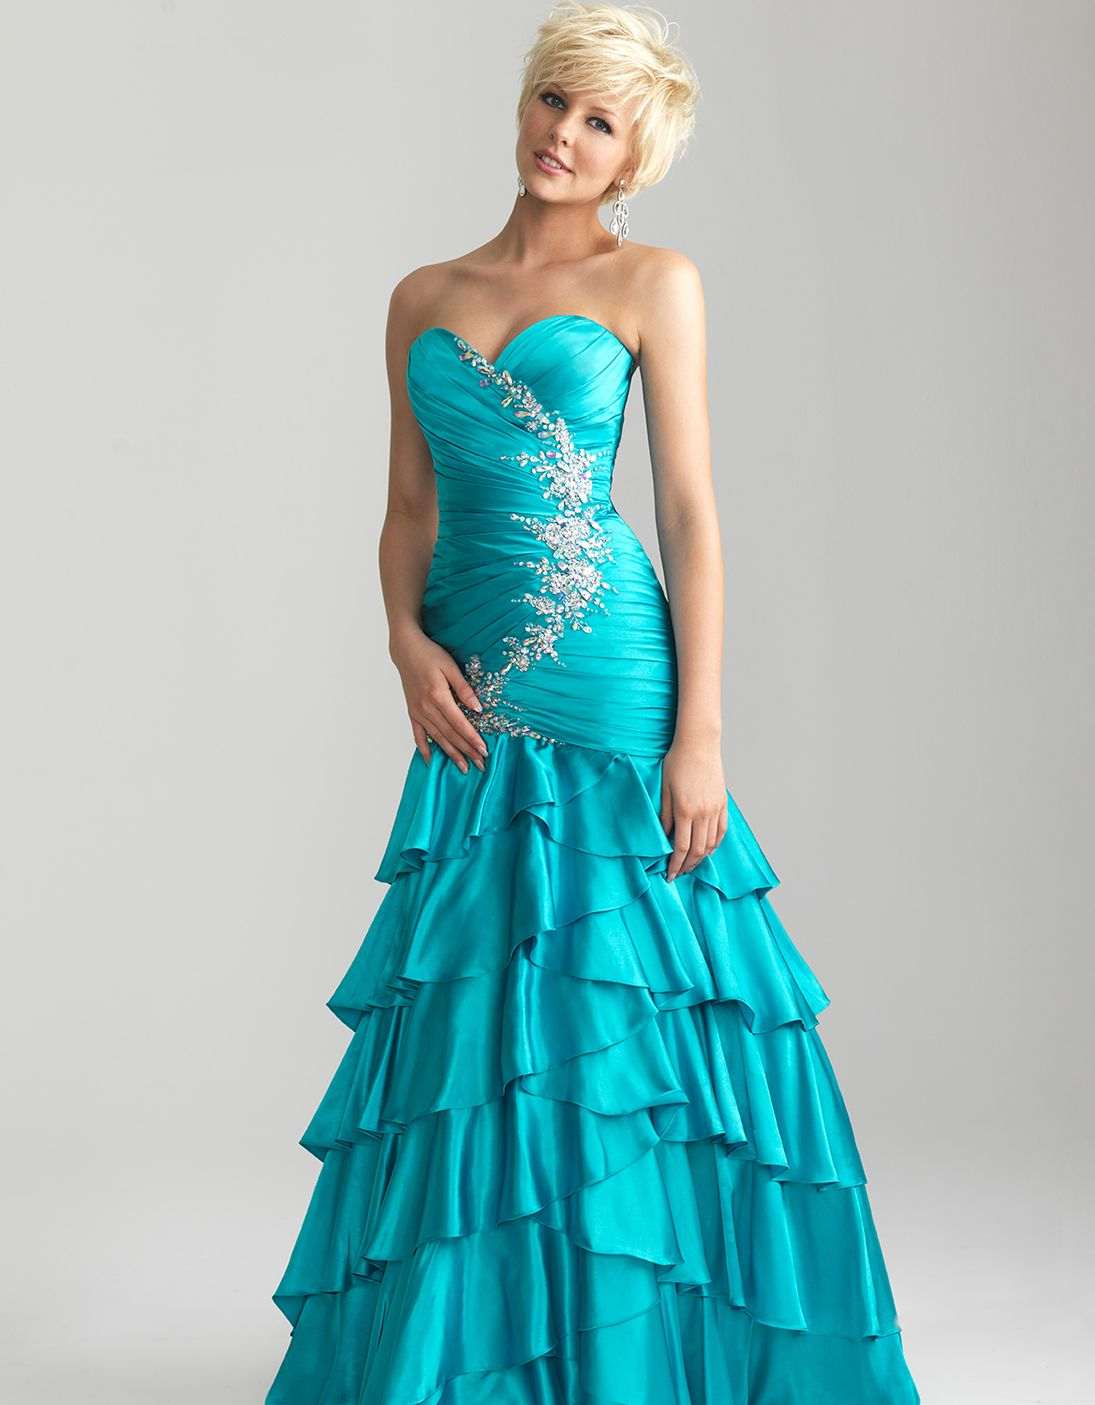 Unique Vintage | Vintage prom, Retro dress and Turquoise beads